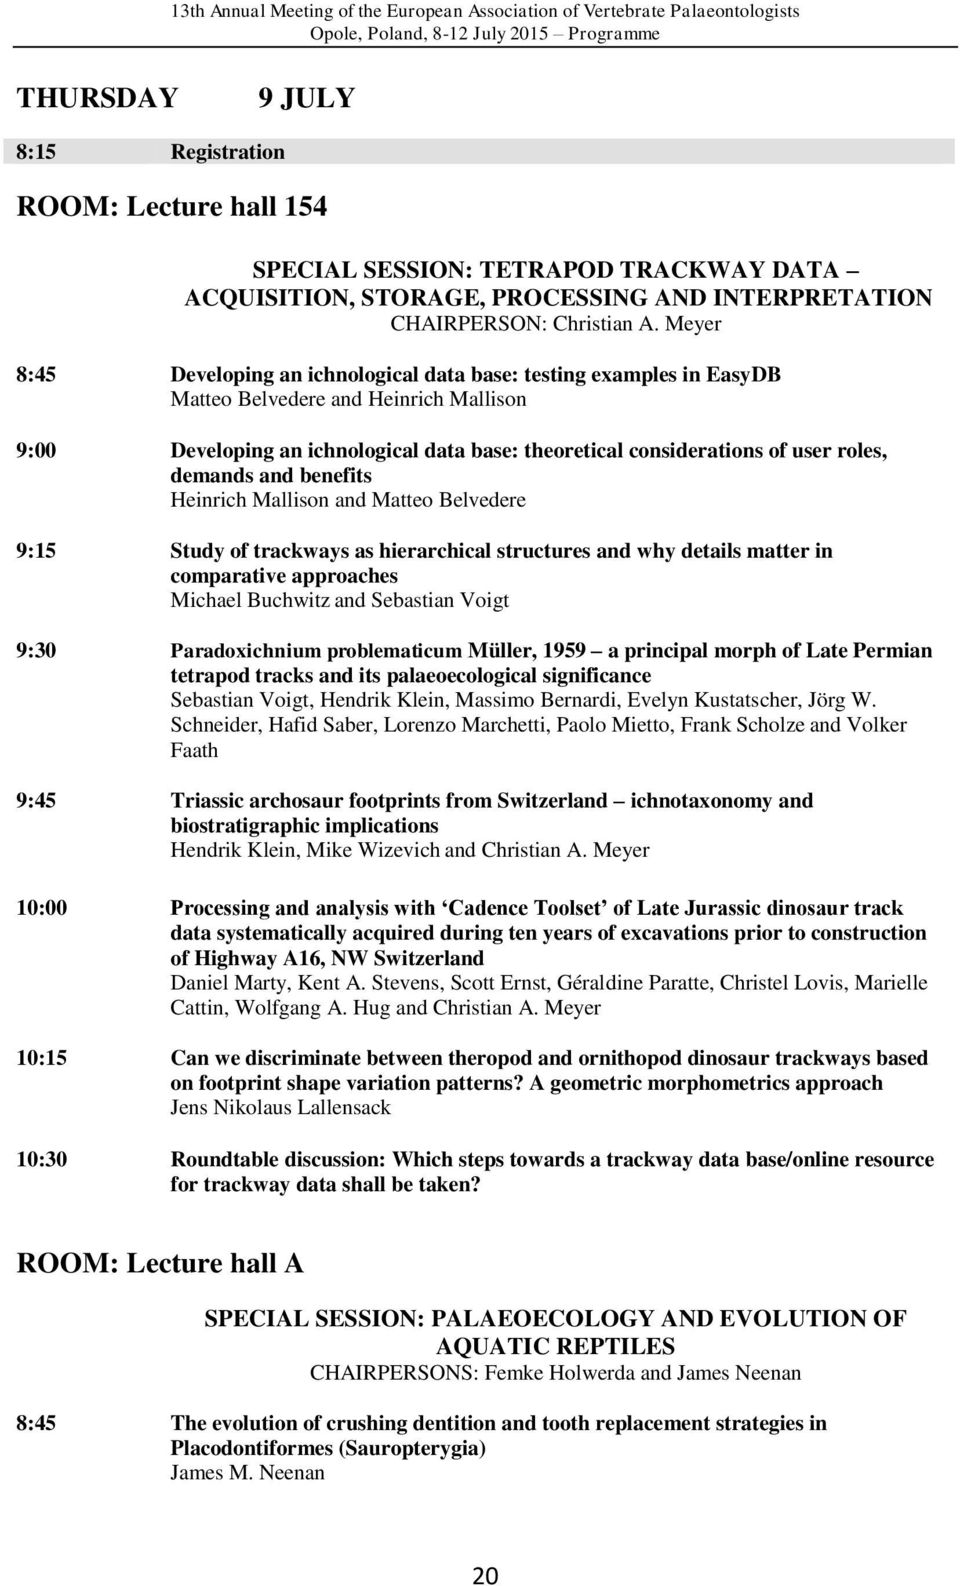 demands and benefits Heinrich Mallison and Matteo Belvedere 9:15 Study of trackways as hierarchical structures and why details matter in comparative approaches Michael Buchwitz and Sebastian Voigt